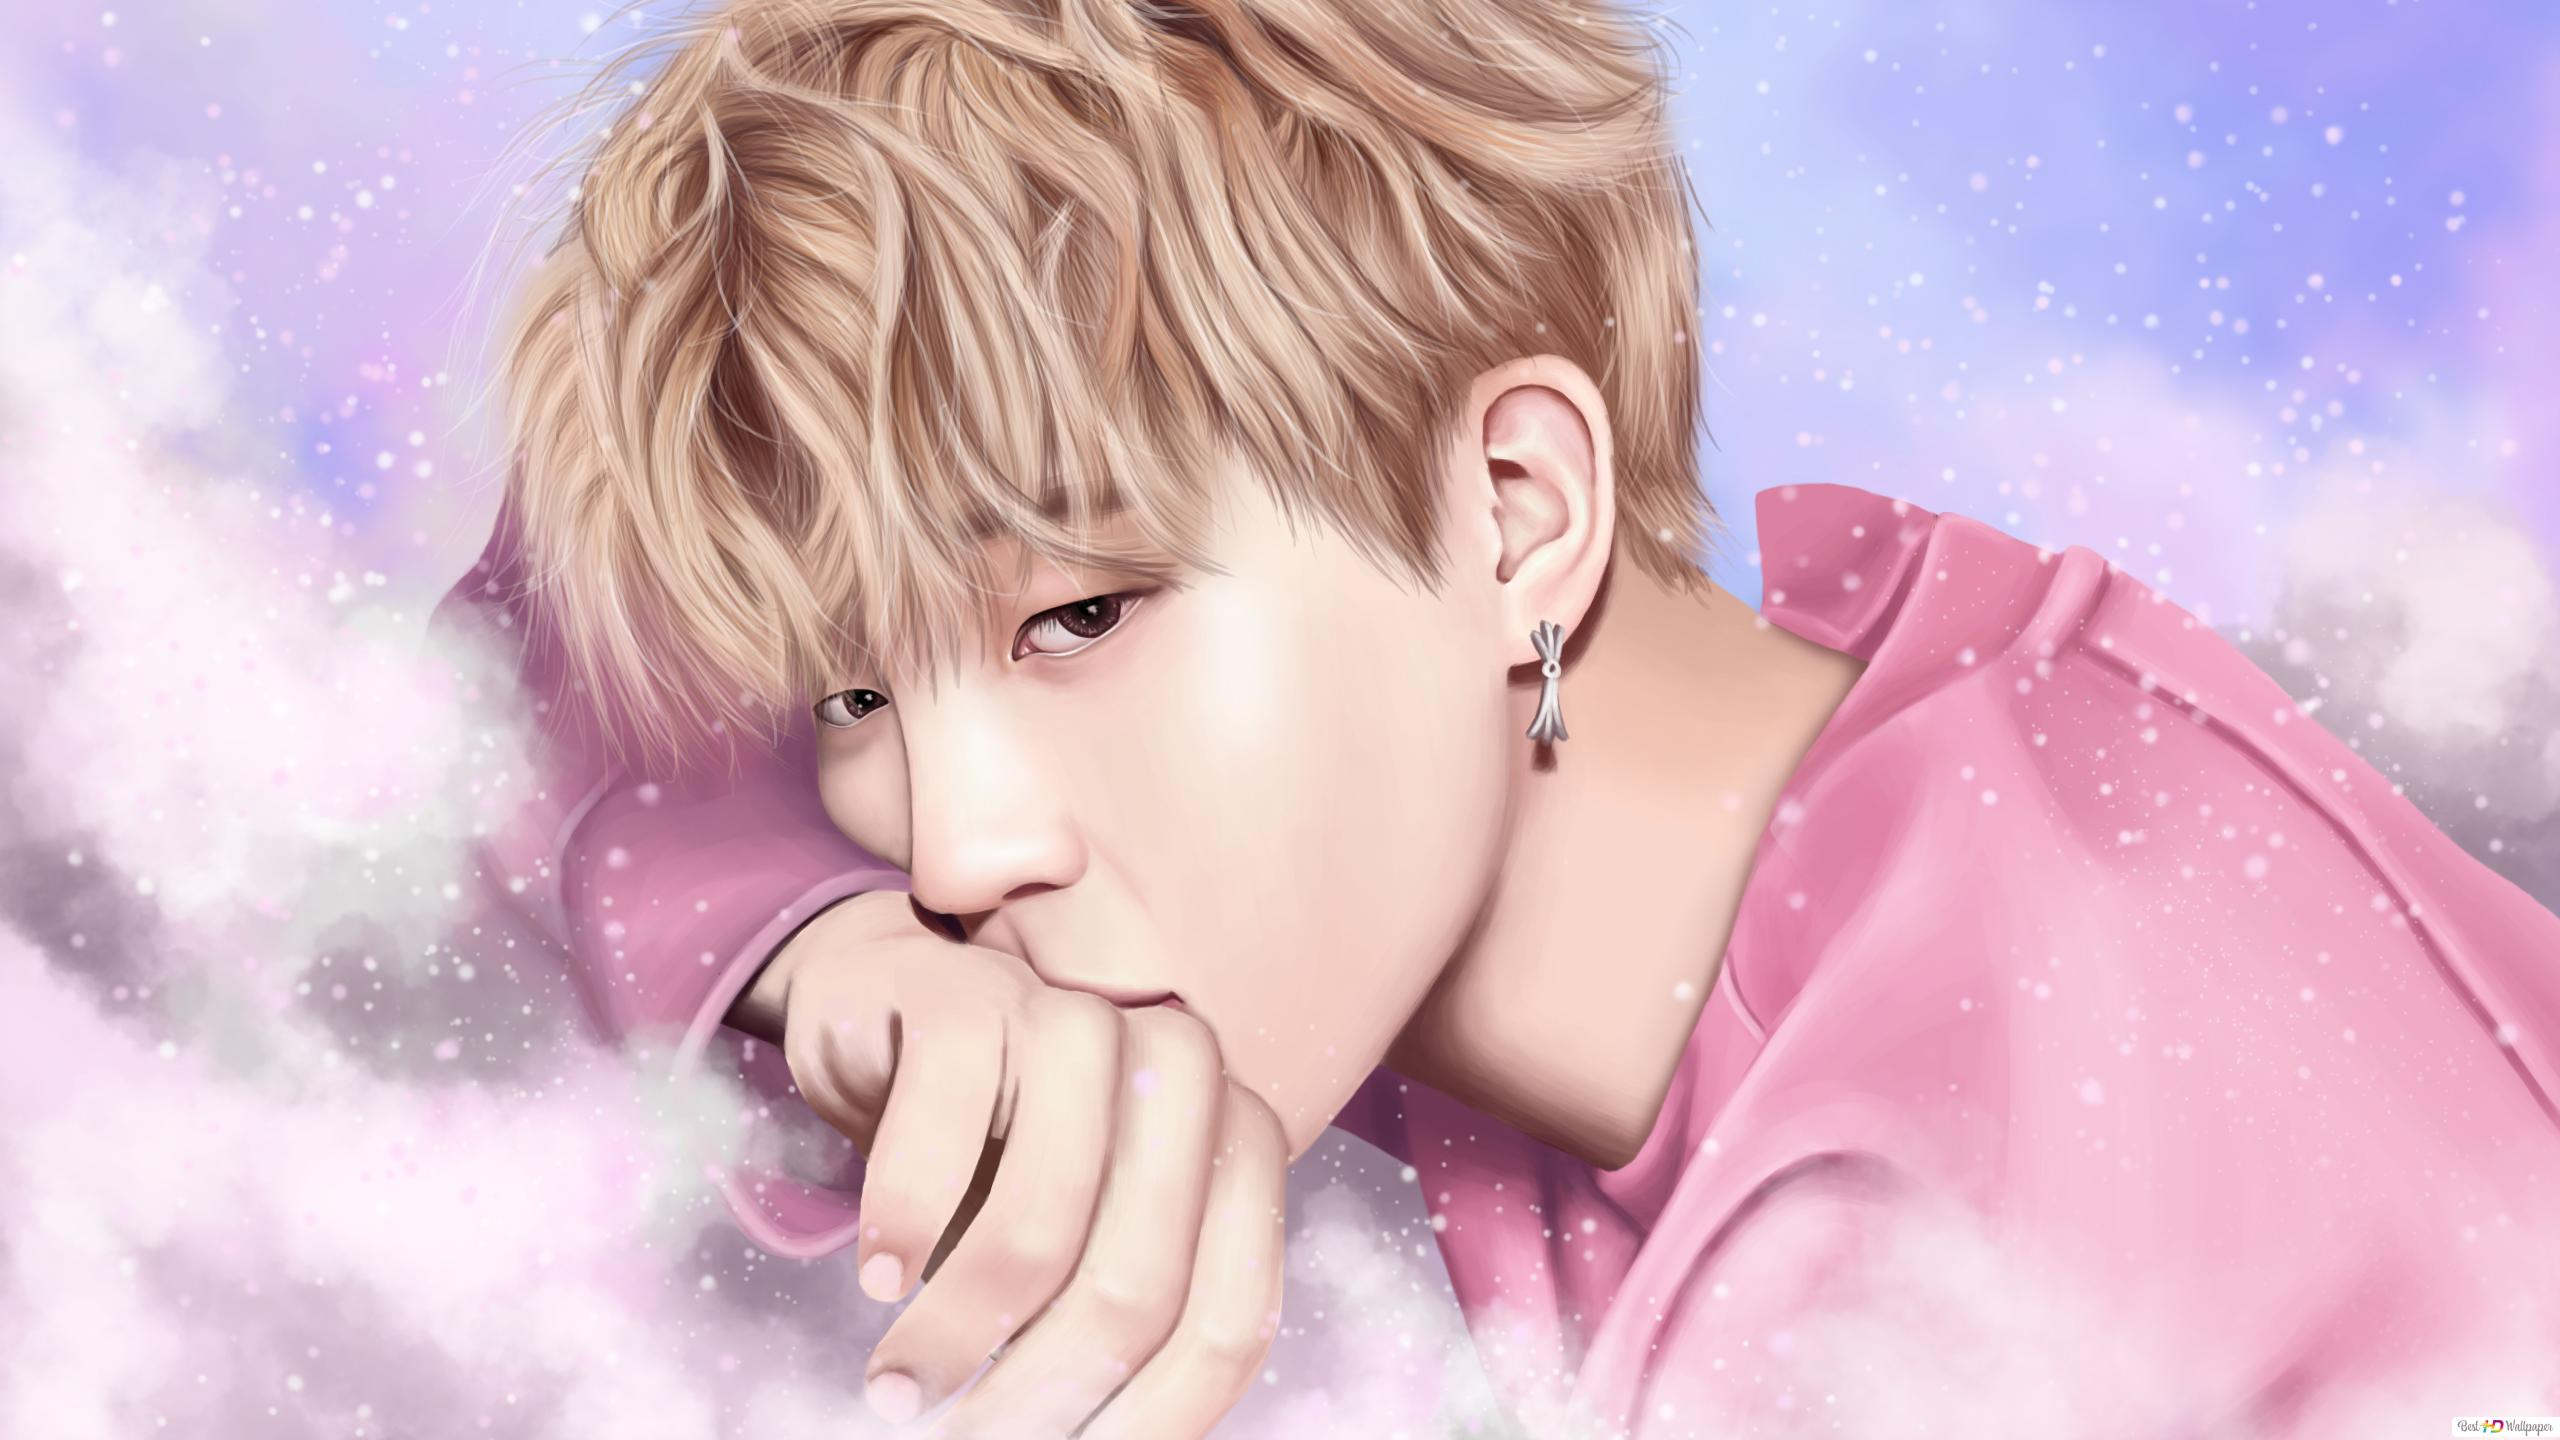 park ji min fanart from bts k pop band wallpaper 2560x1440 52221 51